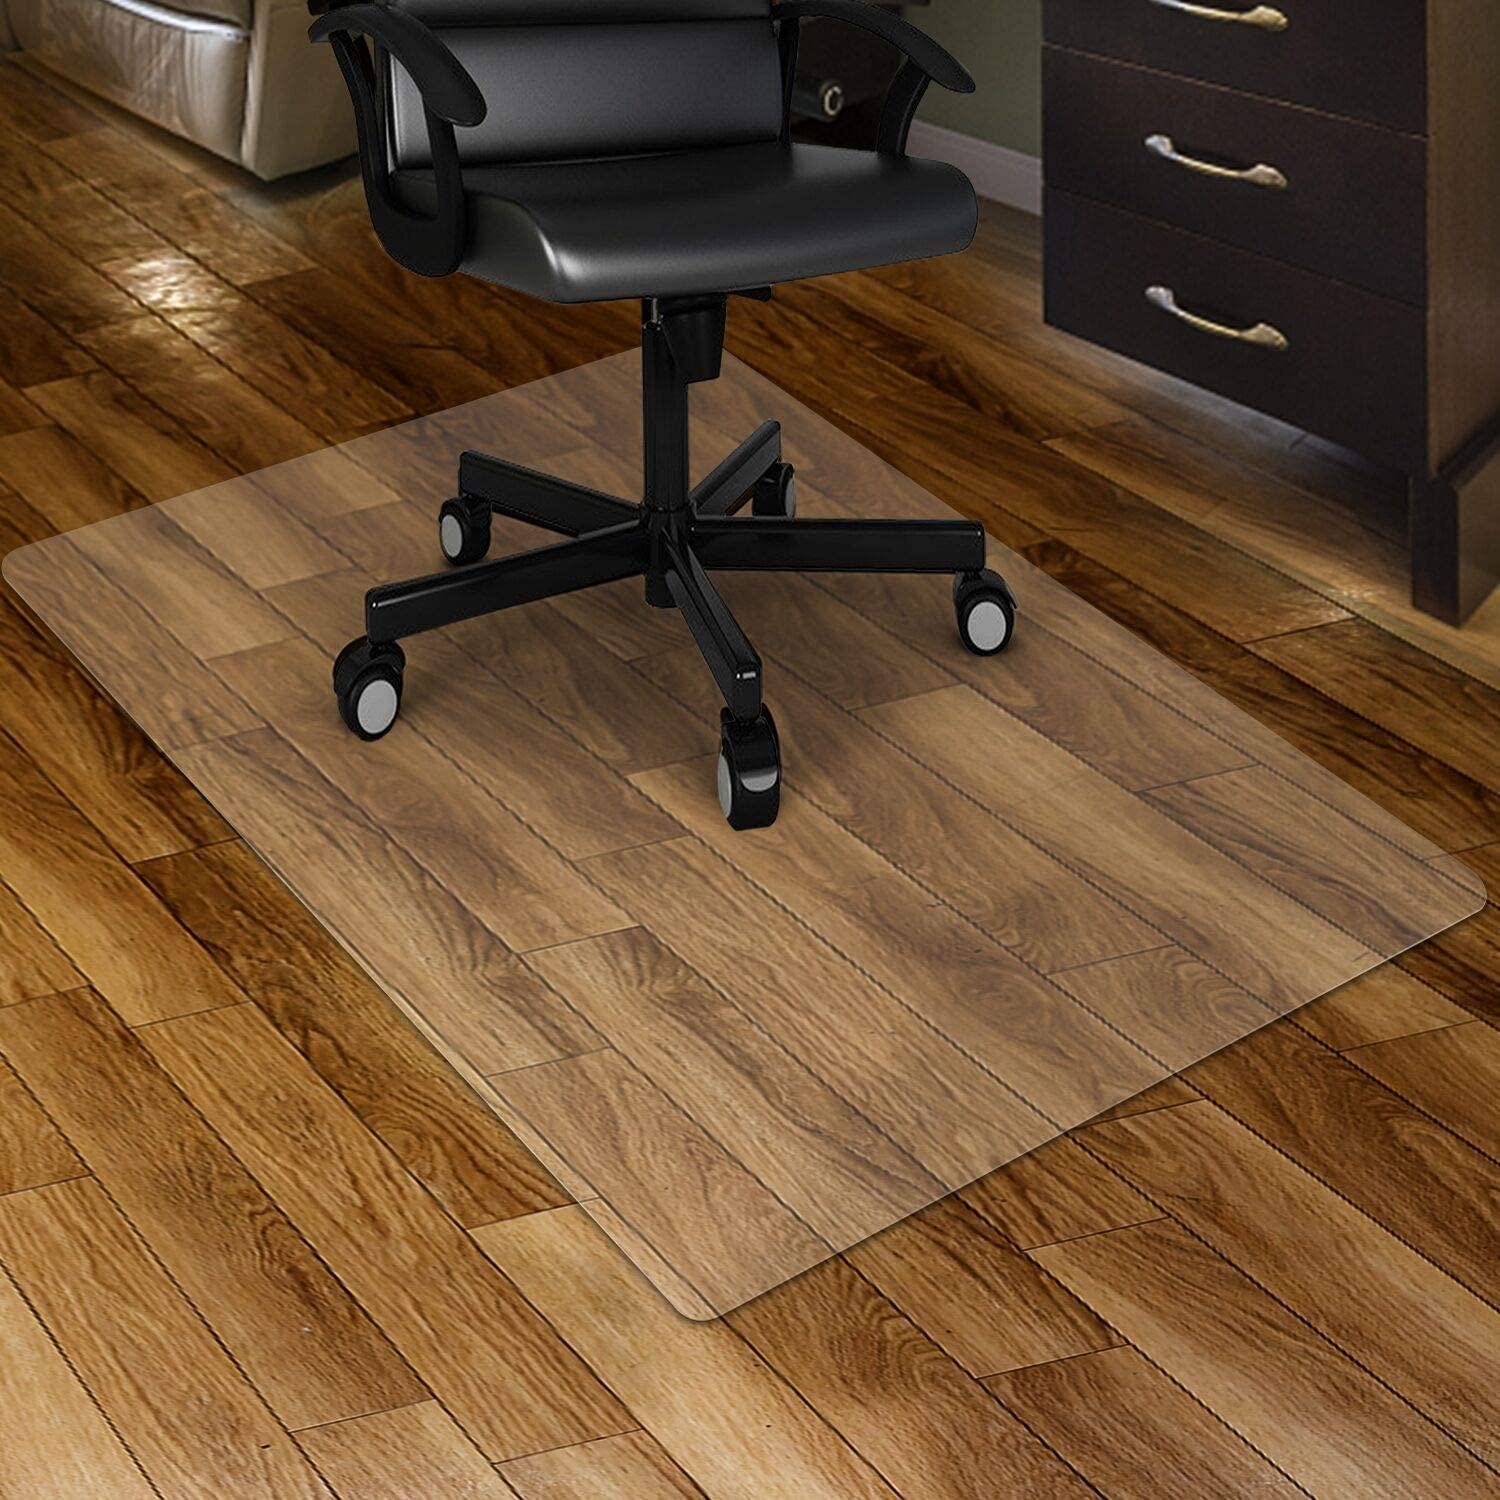 "Kuyal Clear Chair mat for Hard Floors 30 x 48 inches Transparent Floor Mats Wood/Tile Protection Mat for Office & Home (30"" X 48"" Rectangle)"